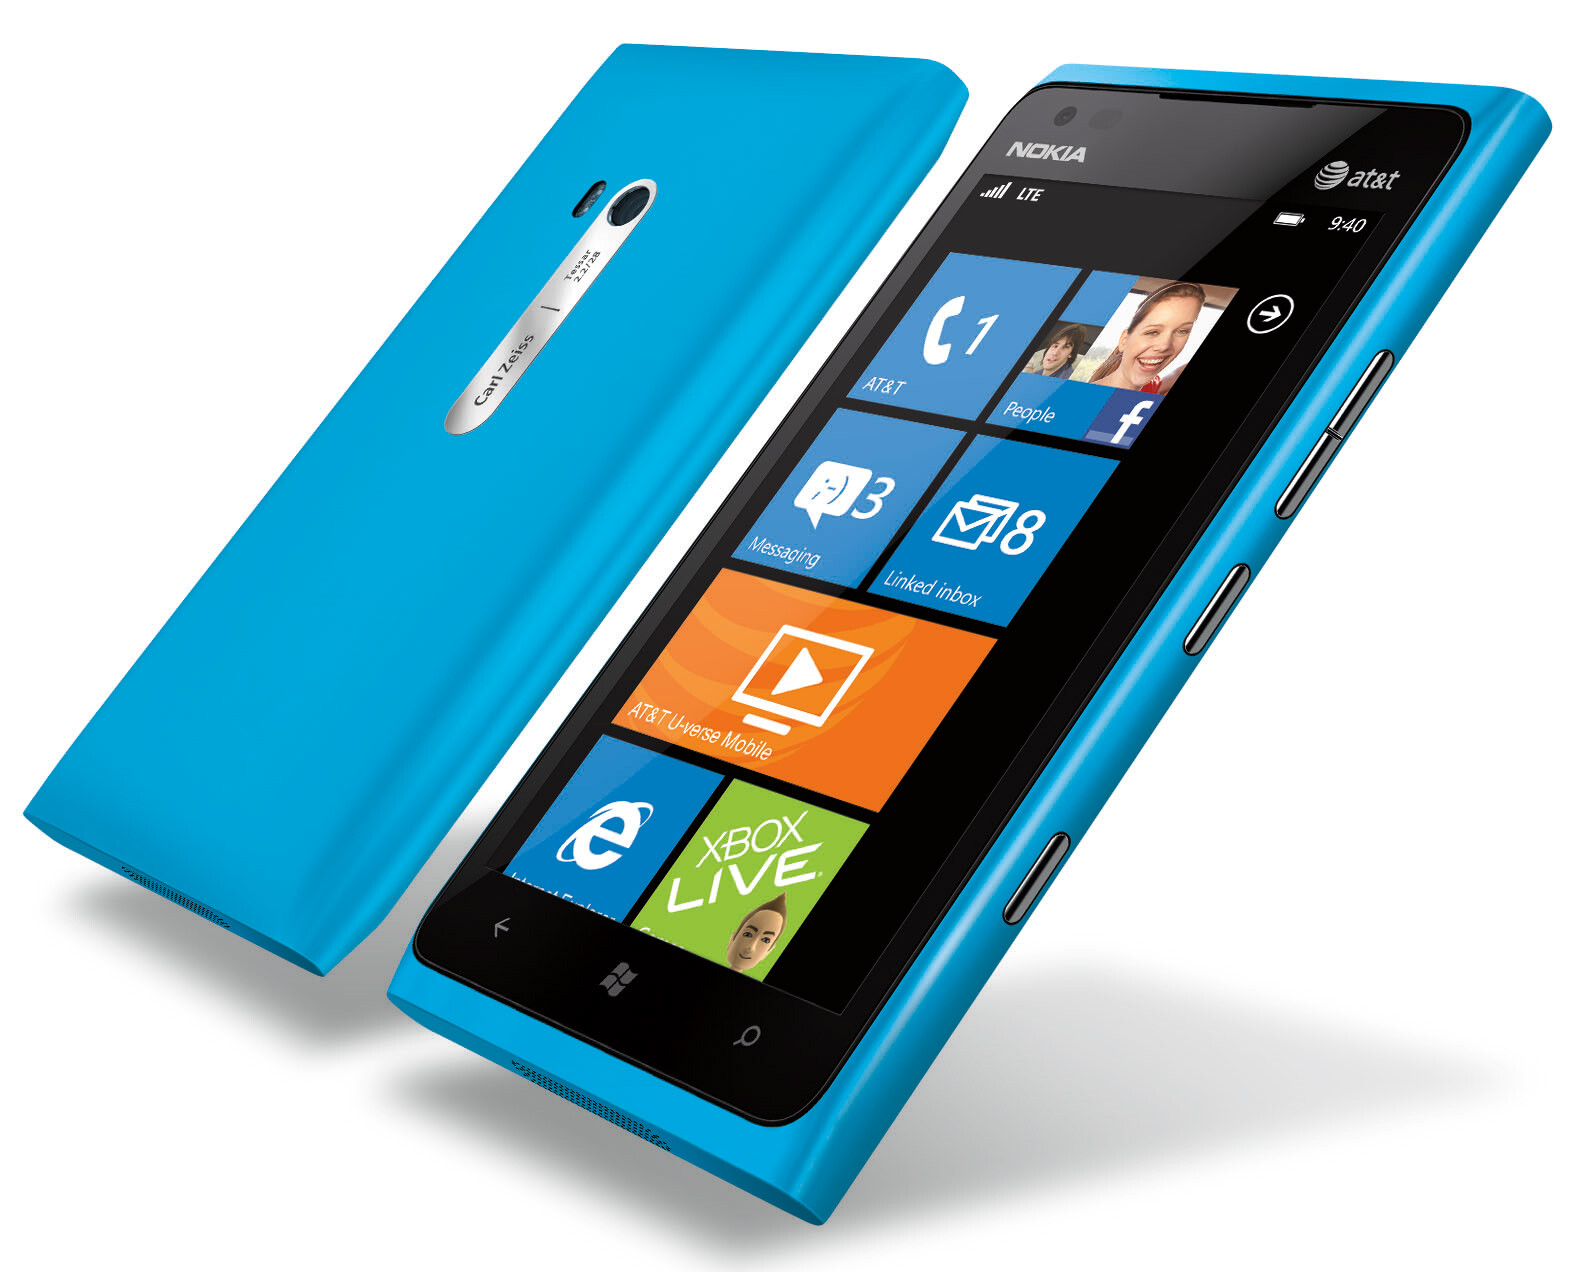 nokia lumia 900 specs. Black Bedroom Furniture Sets. Home Design Ideas